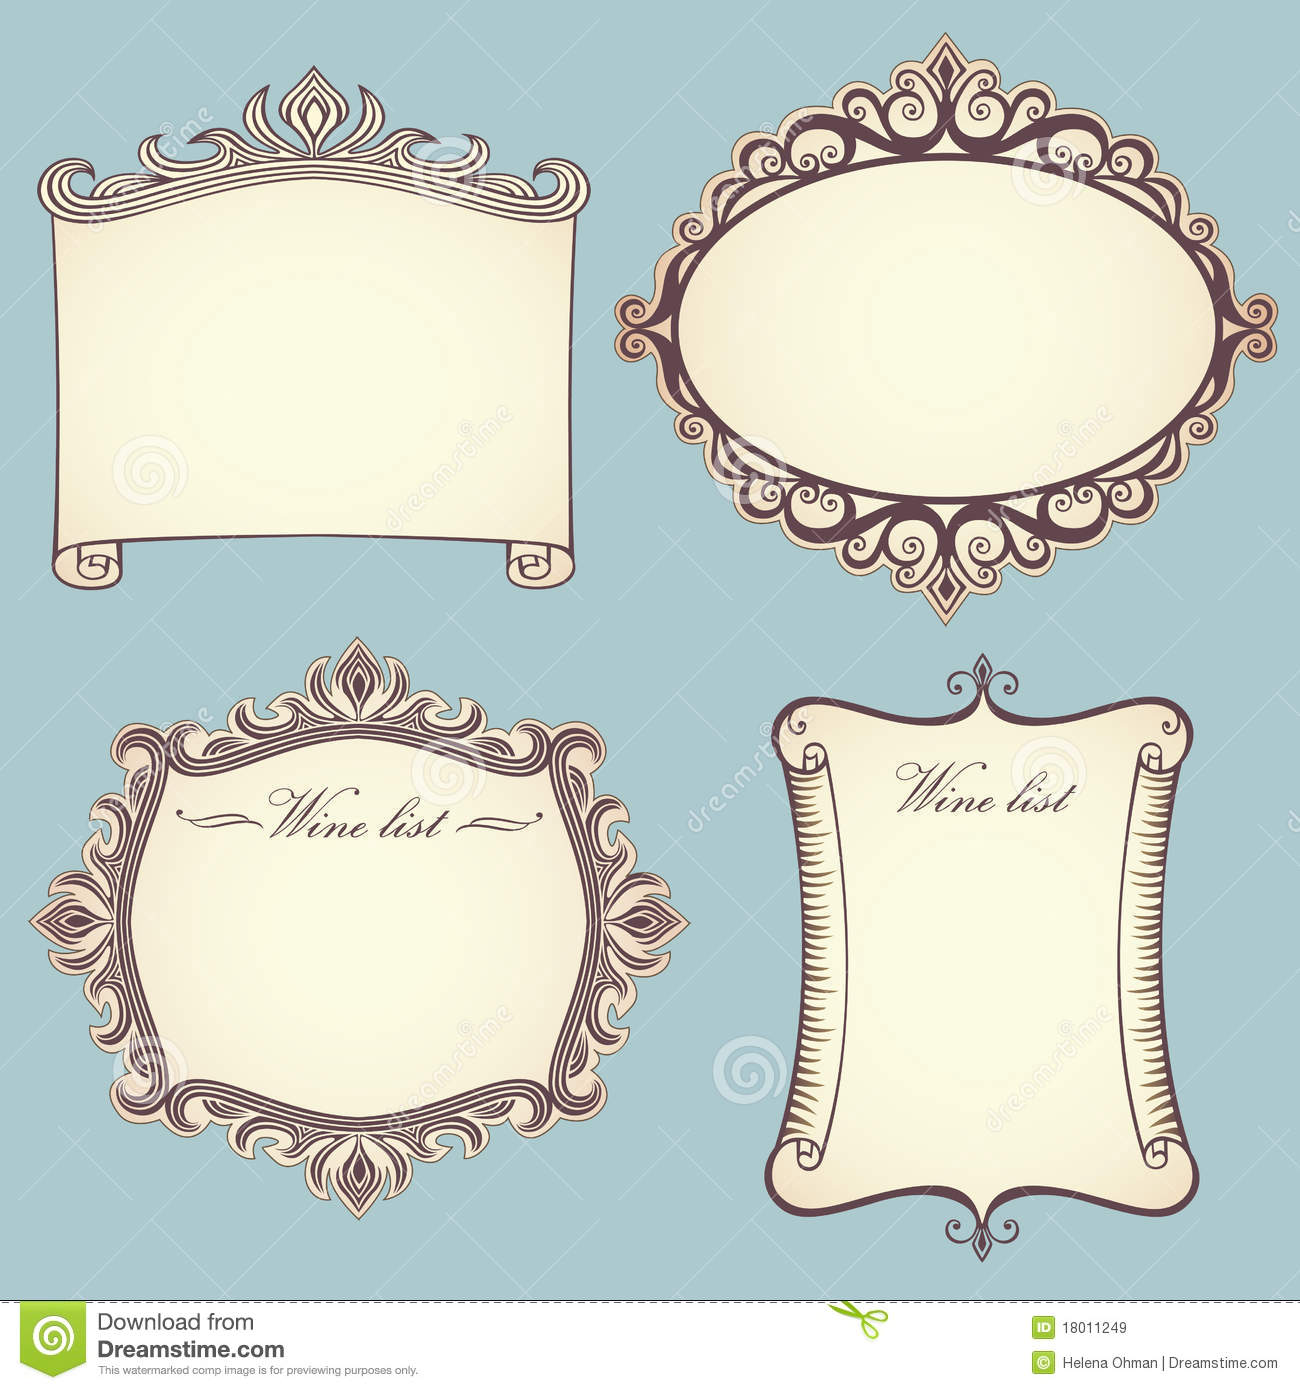 Vintage frames royalty free stock images image 18011249 for How to make vintage frames